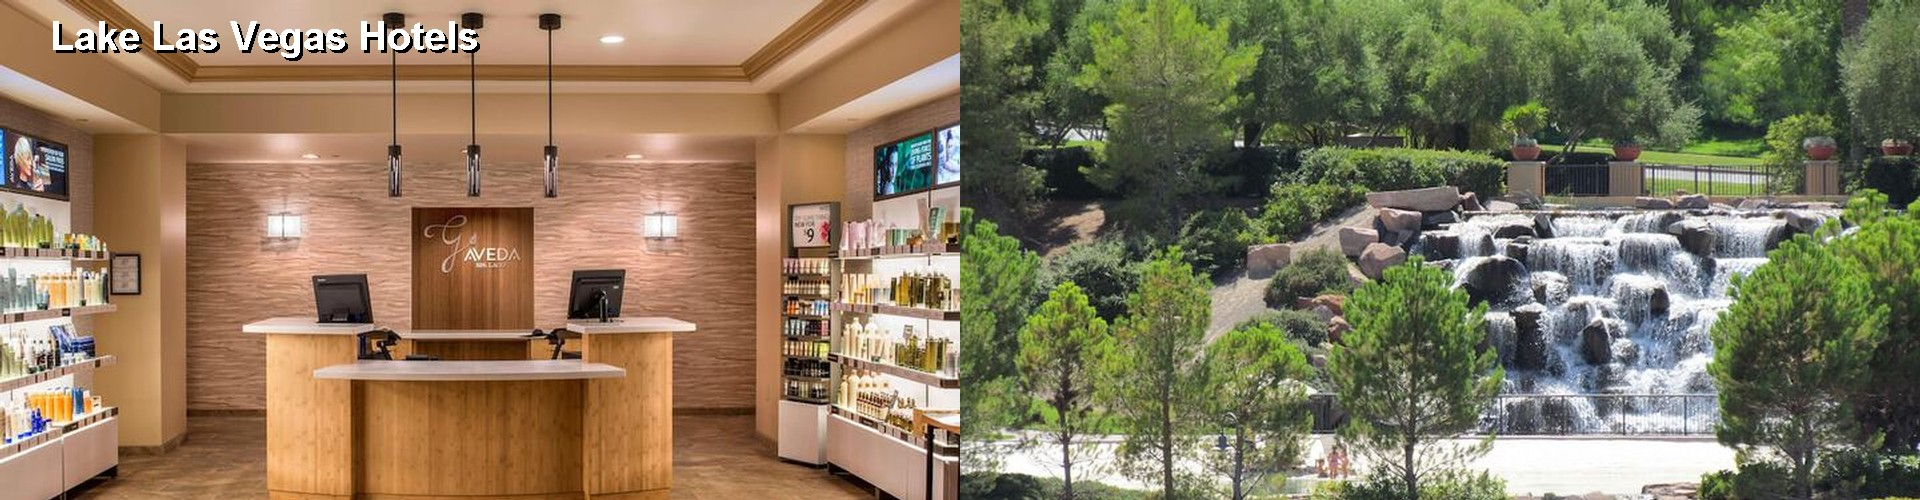 5 Best Hotels near Lake Las Vegas